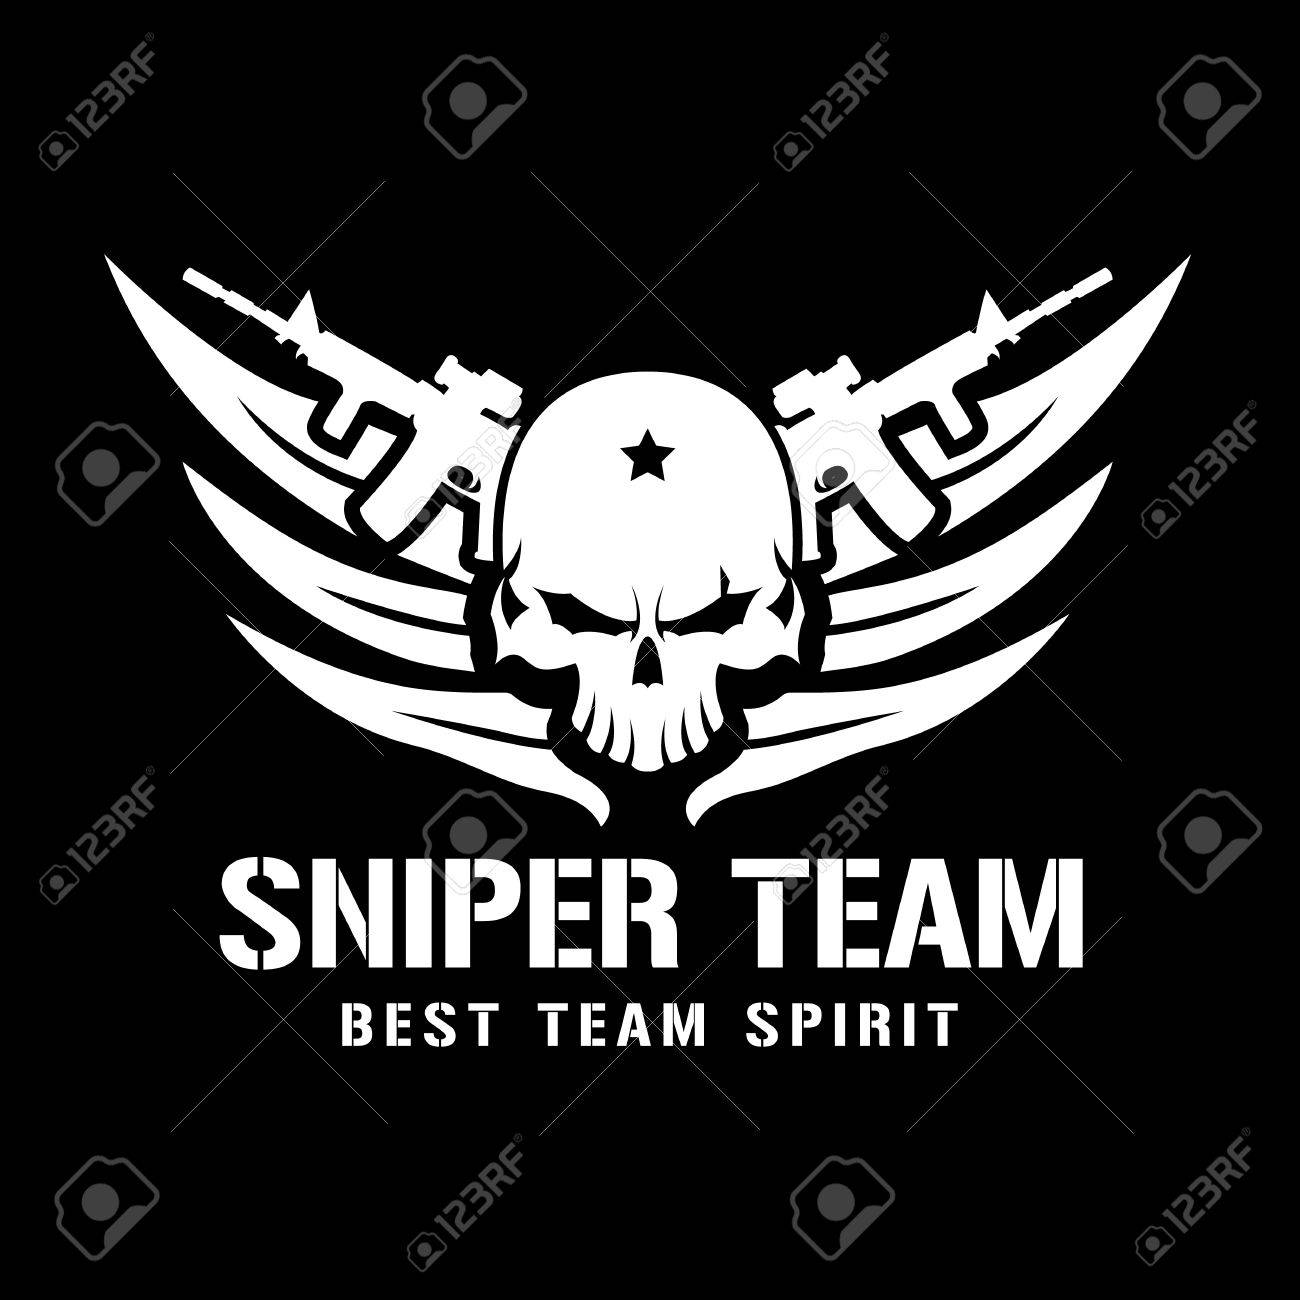 Siper Team Logo Warrior Skull Logo Tattoo Vector Vector Logo Royalty Free Cliparts Vectors And Stock Illustration Image 52596799